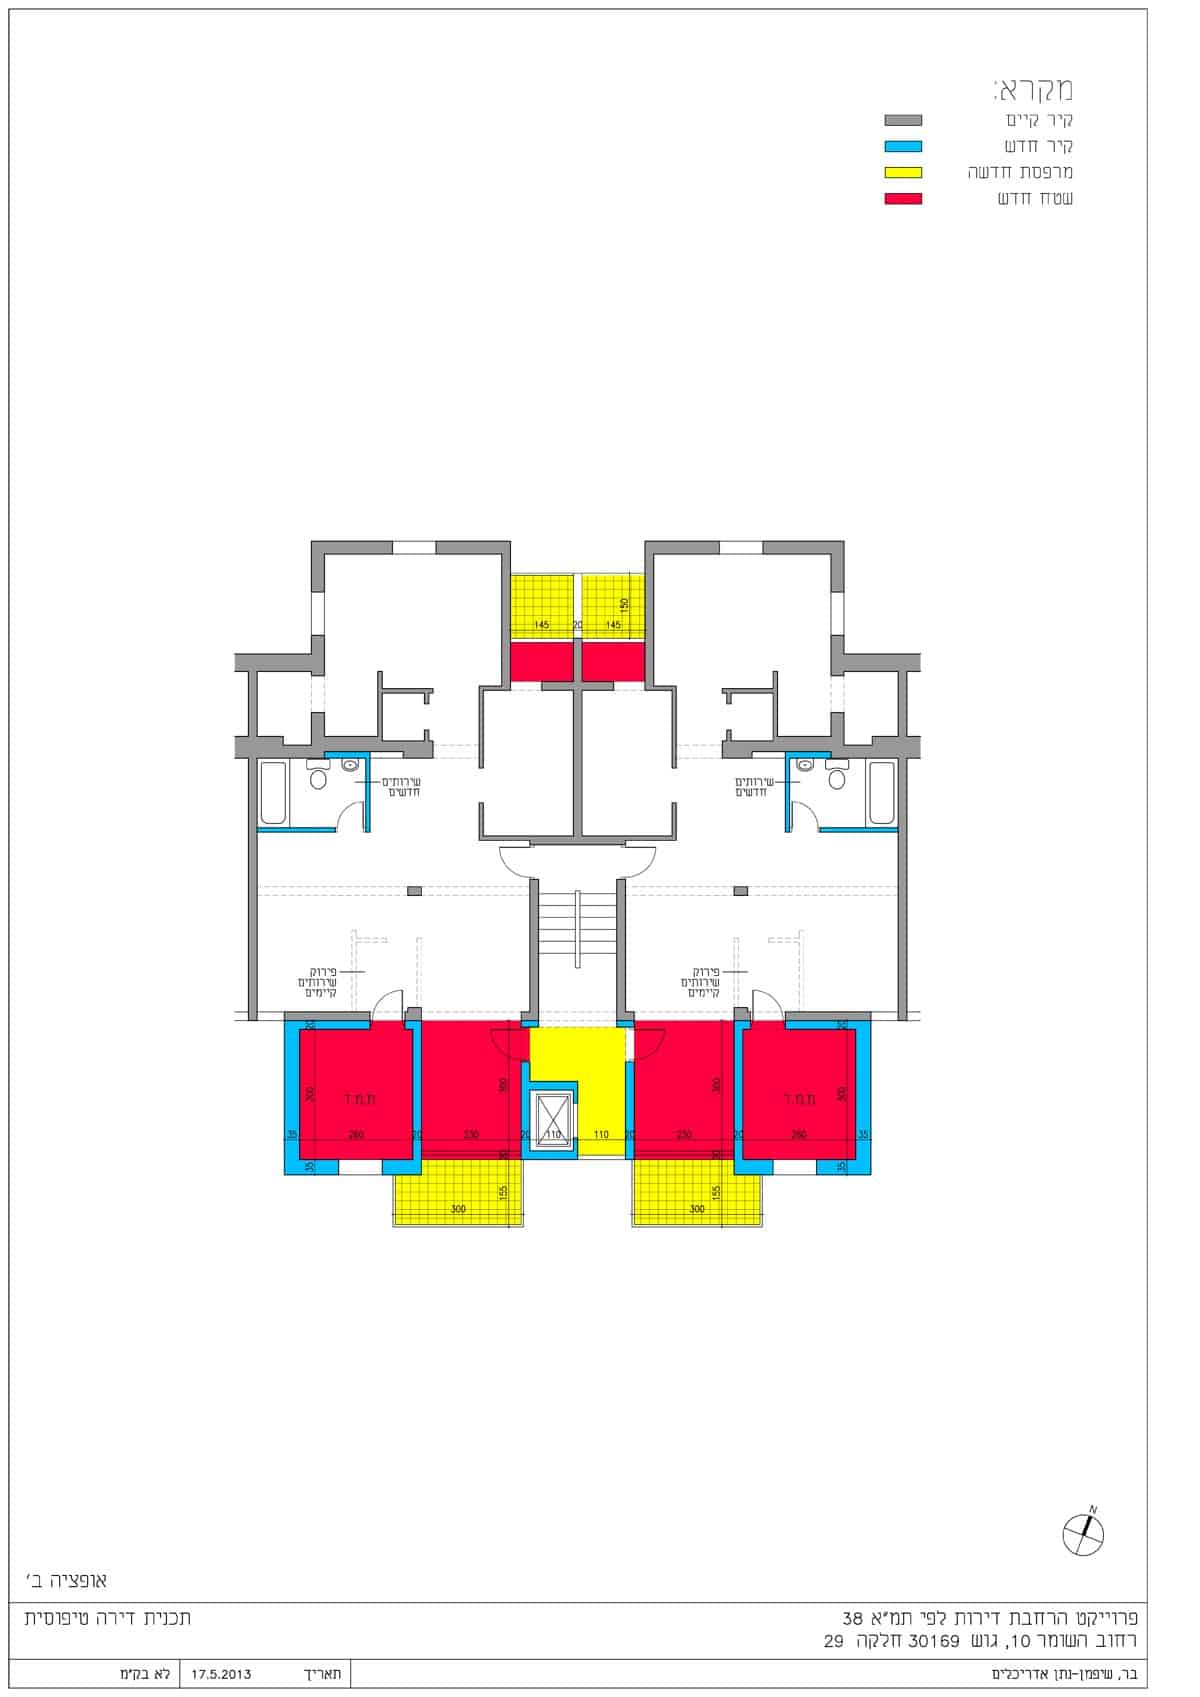 HaShomer 10, Jerusalem – Typical apartment plan in Tama 38 project